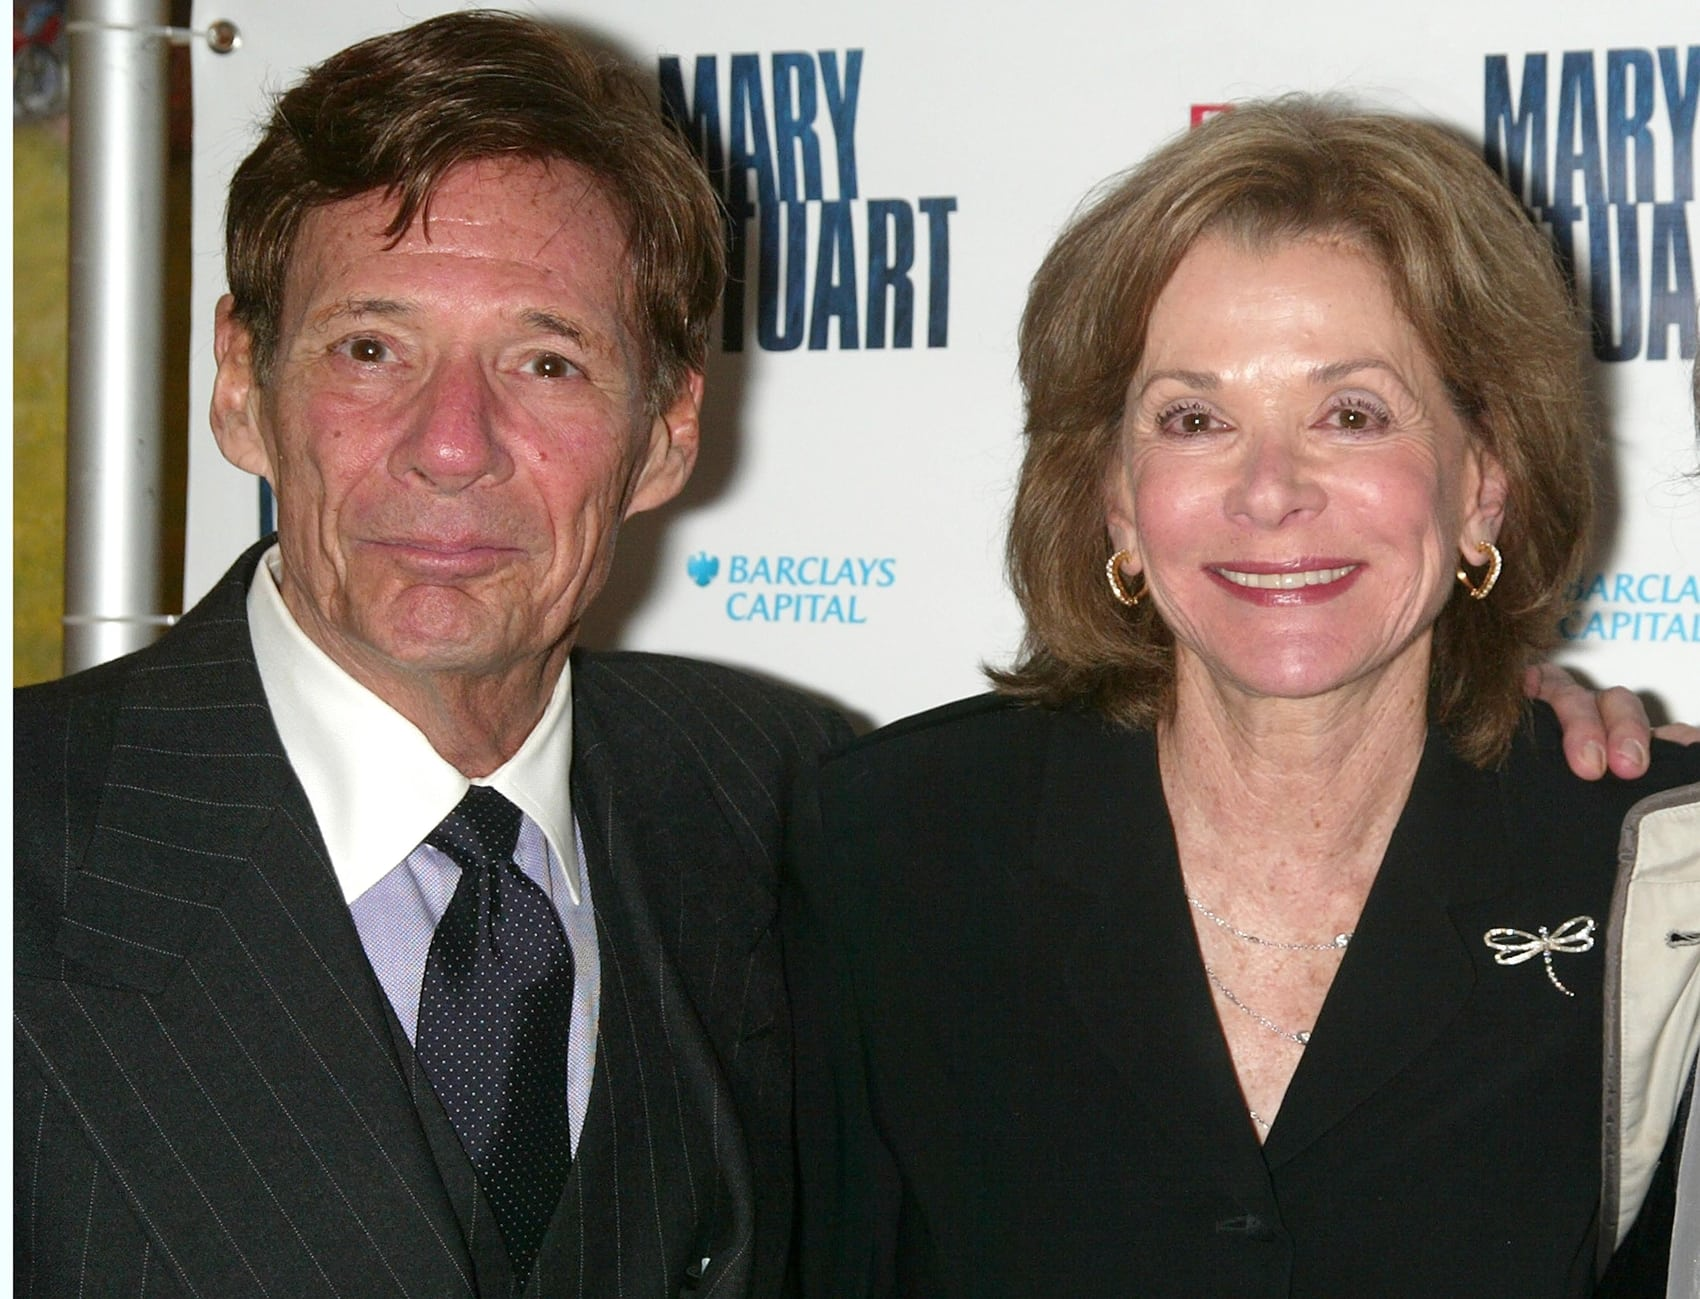 Jessica Walter was married to Tony Award-winning actor Ron Leibman from 1983 until his death in 2019